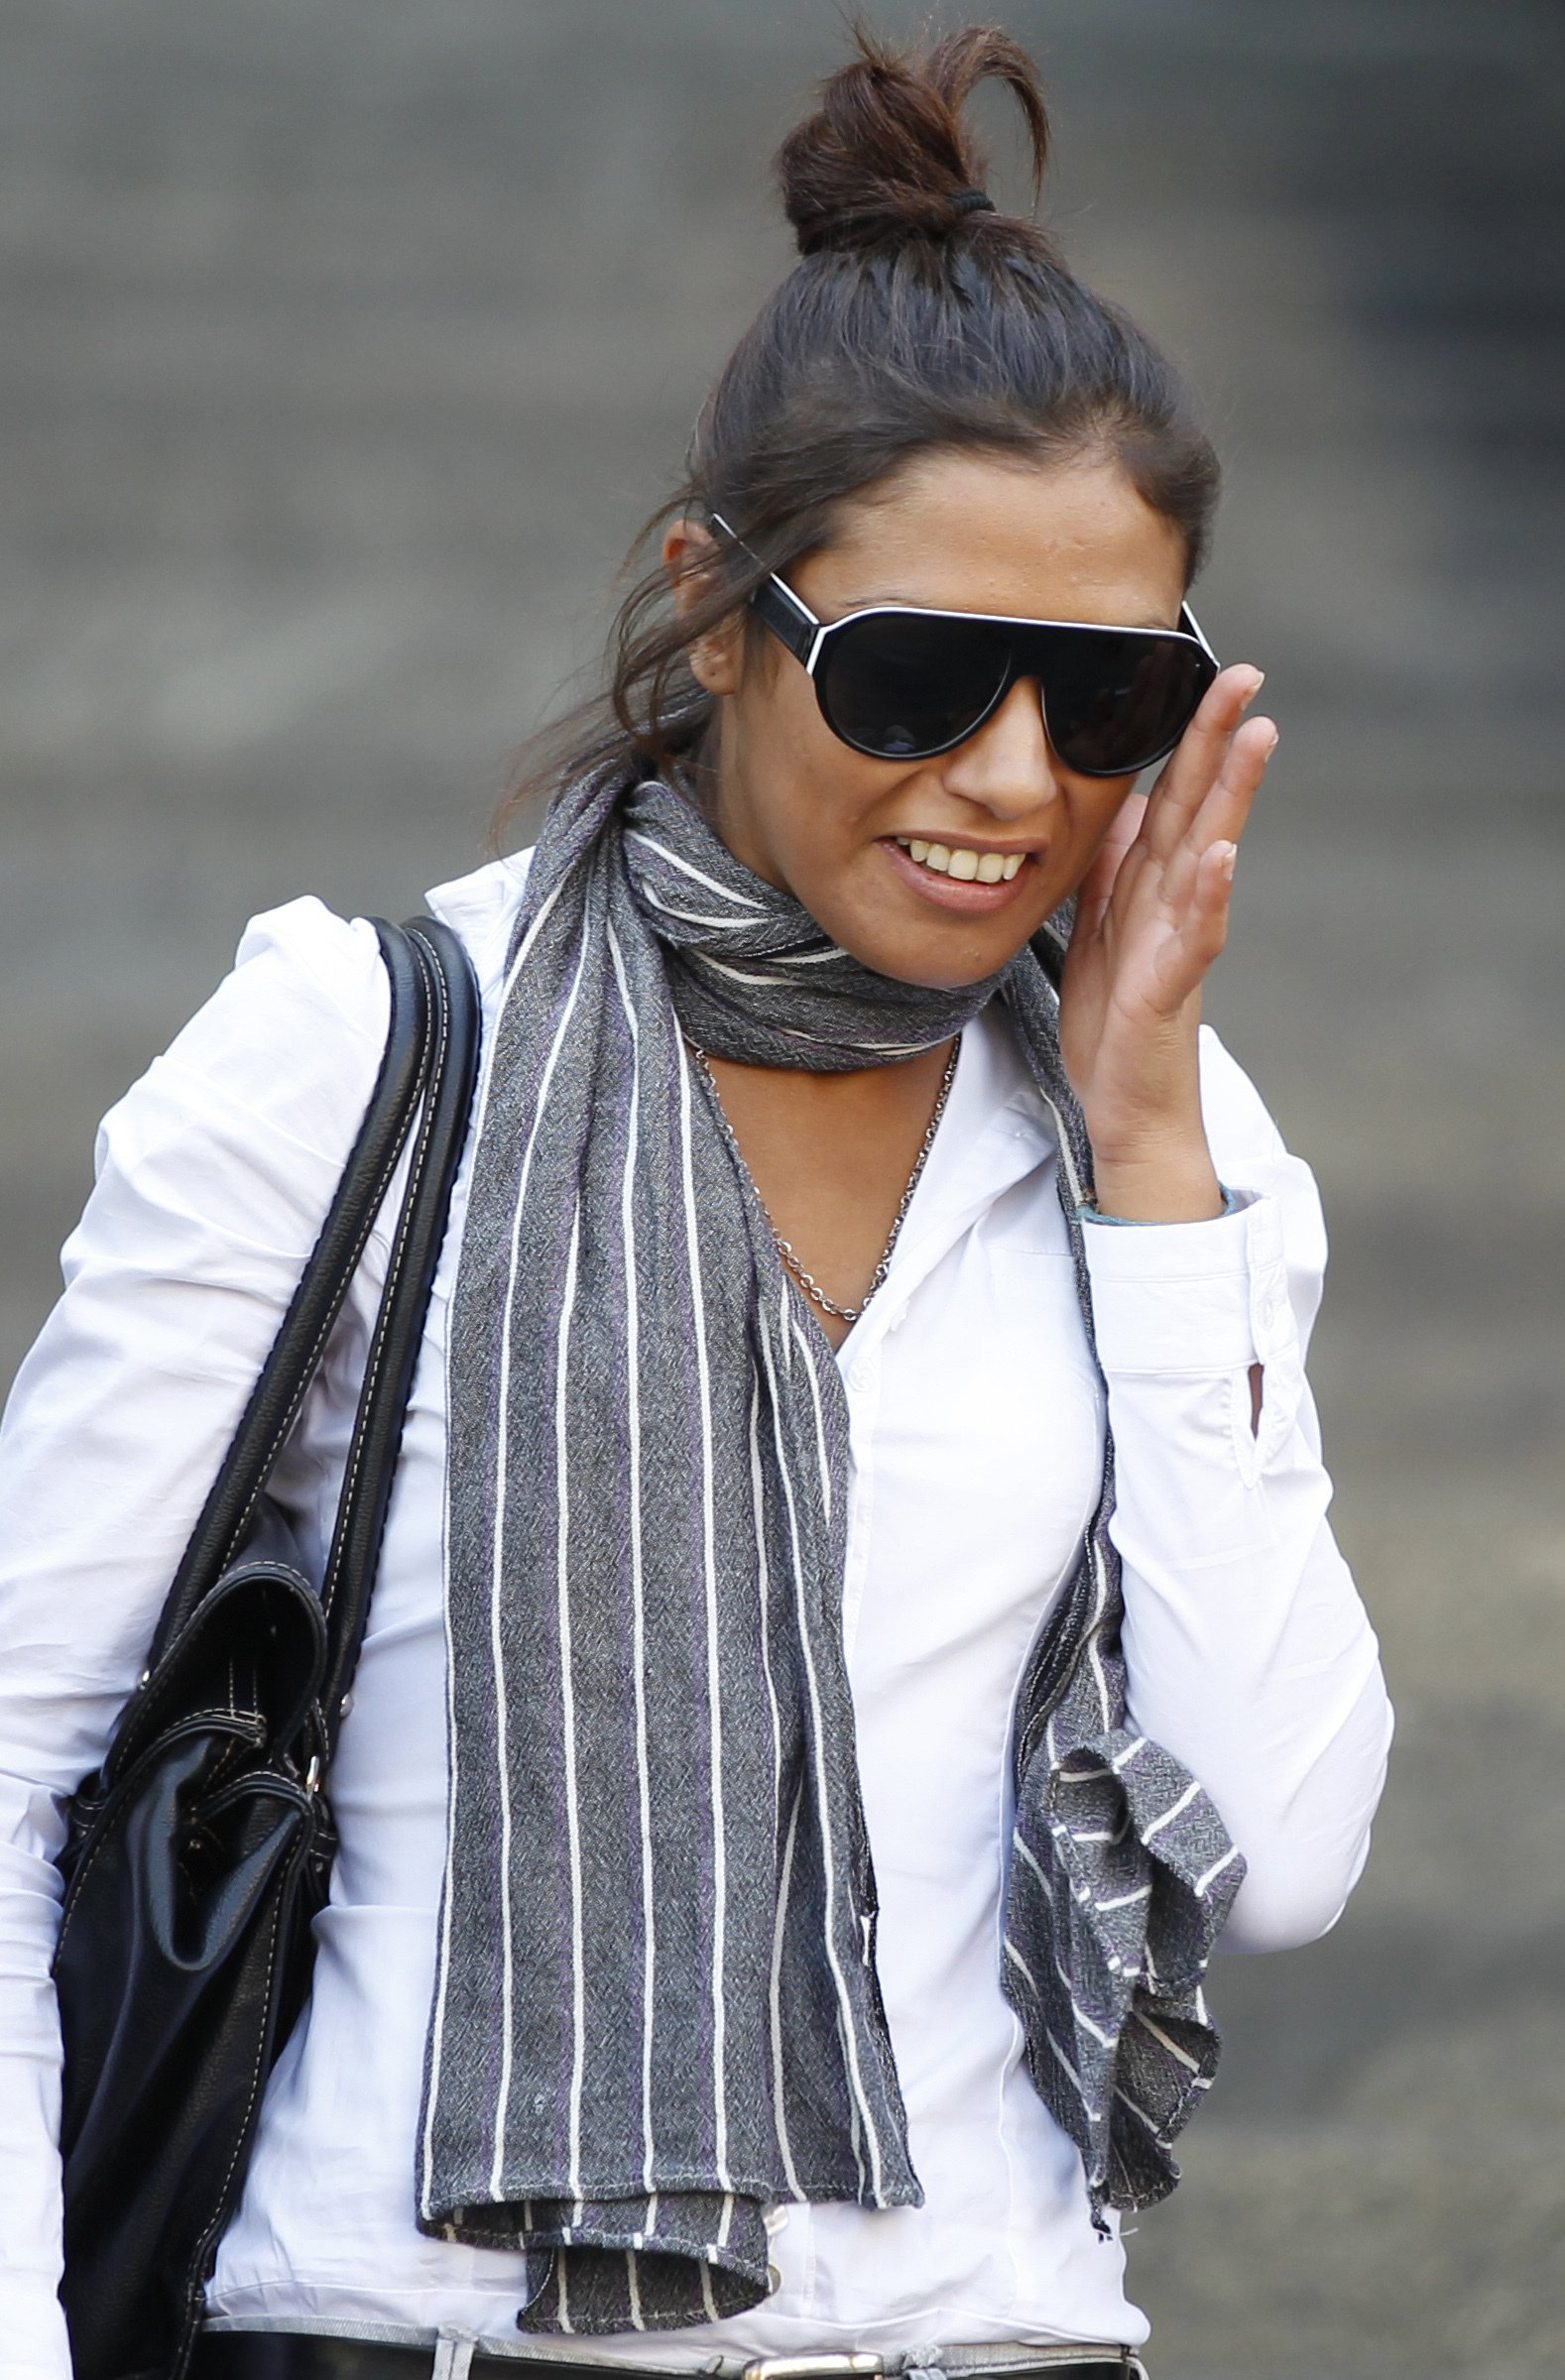 """FILE - In this Monday, Oct. 3, 2011 file photo, Imane Fadil smiles as she leaves the court in Milan, Italy. Italy prosecutors have opened an investigation into the death of a Moroccan model who testified in one of the inquiries linked to ex-Premier Silvio Berlusconi's """"bunga bunga"""" parties. Citing Milan prosecutor Francesco Greco, Italian news agency ANSA reported that Imane Fadil died March 1 at a Milan hospital, where she had been treated since Jan. 29 exhibiting """"symptoms of poisoning."""" (AP Photo/Luca Bruno, File)"""